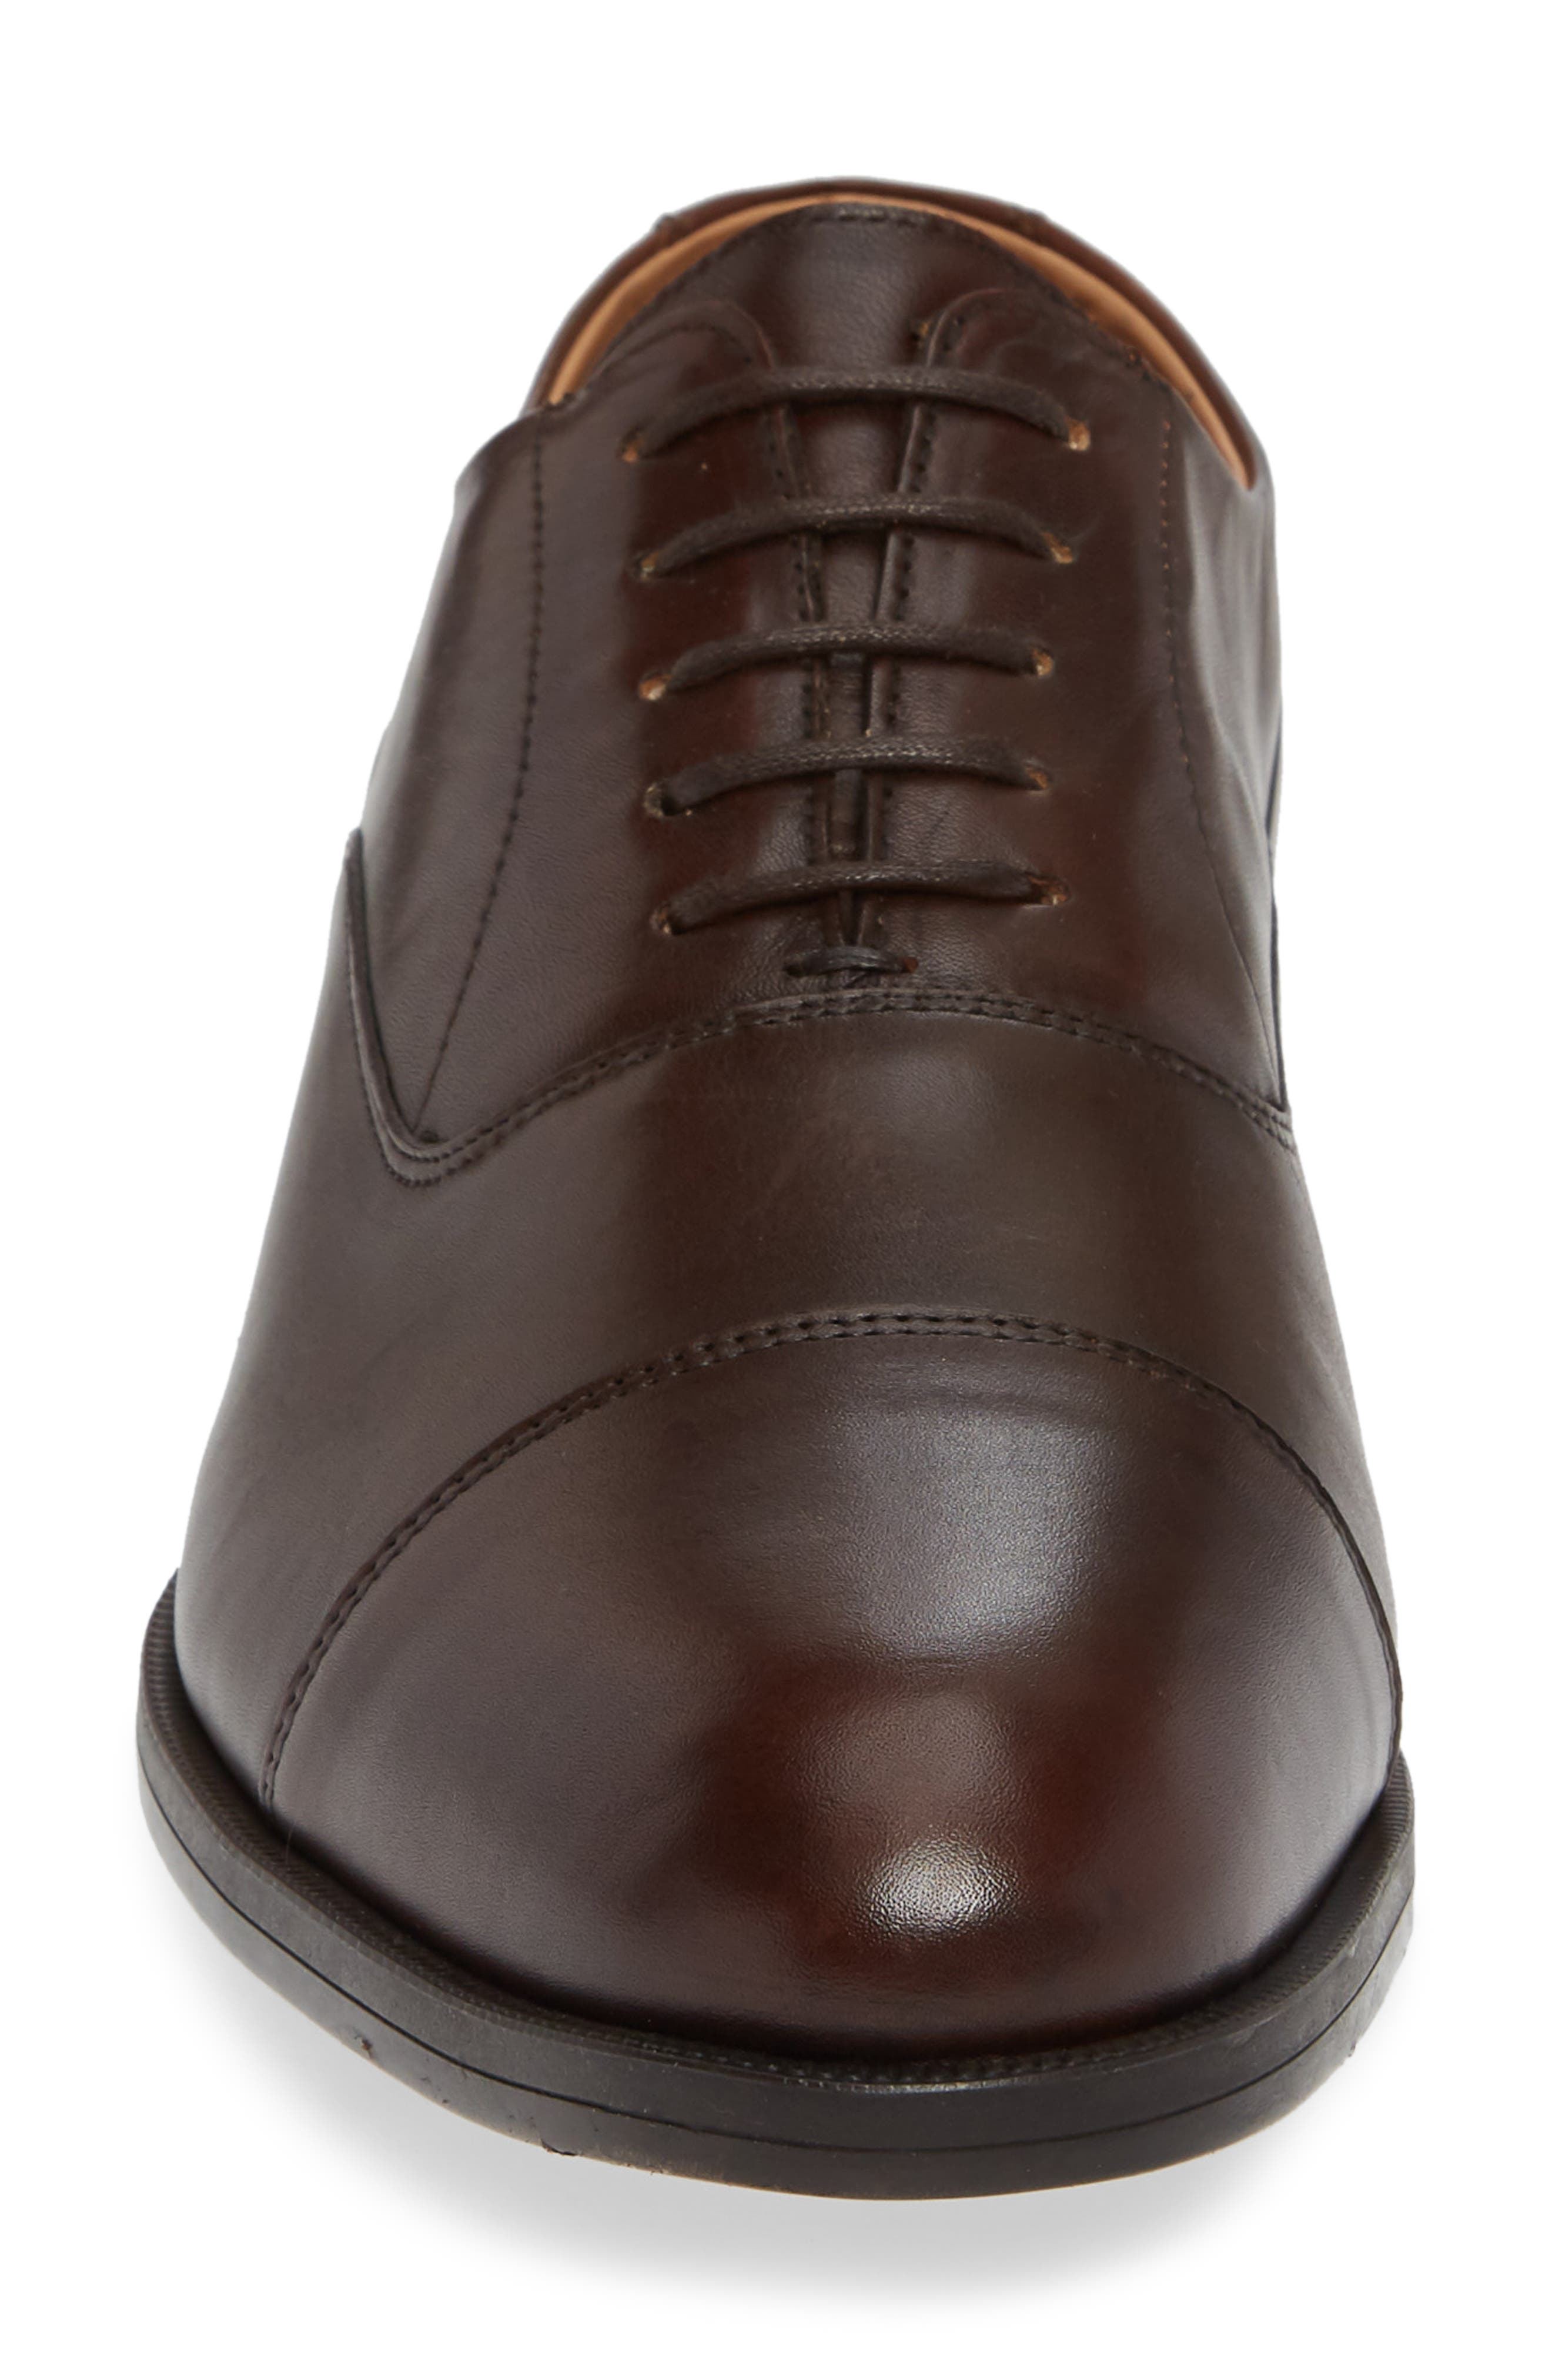 VINCE CAMUTO, Iven Cap Toe Oxford, Alternate thumbnail 4, color, DARK BROWN LEATHER